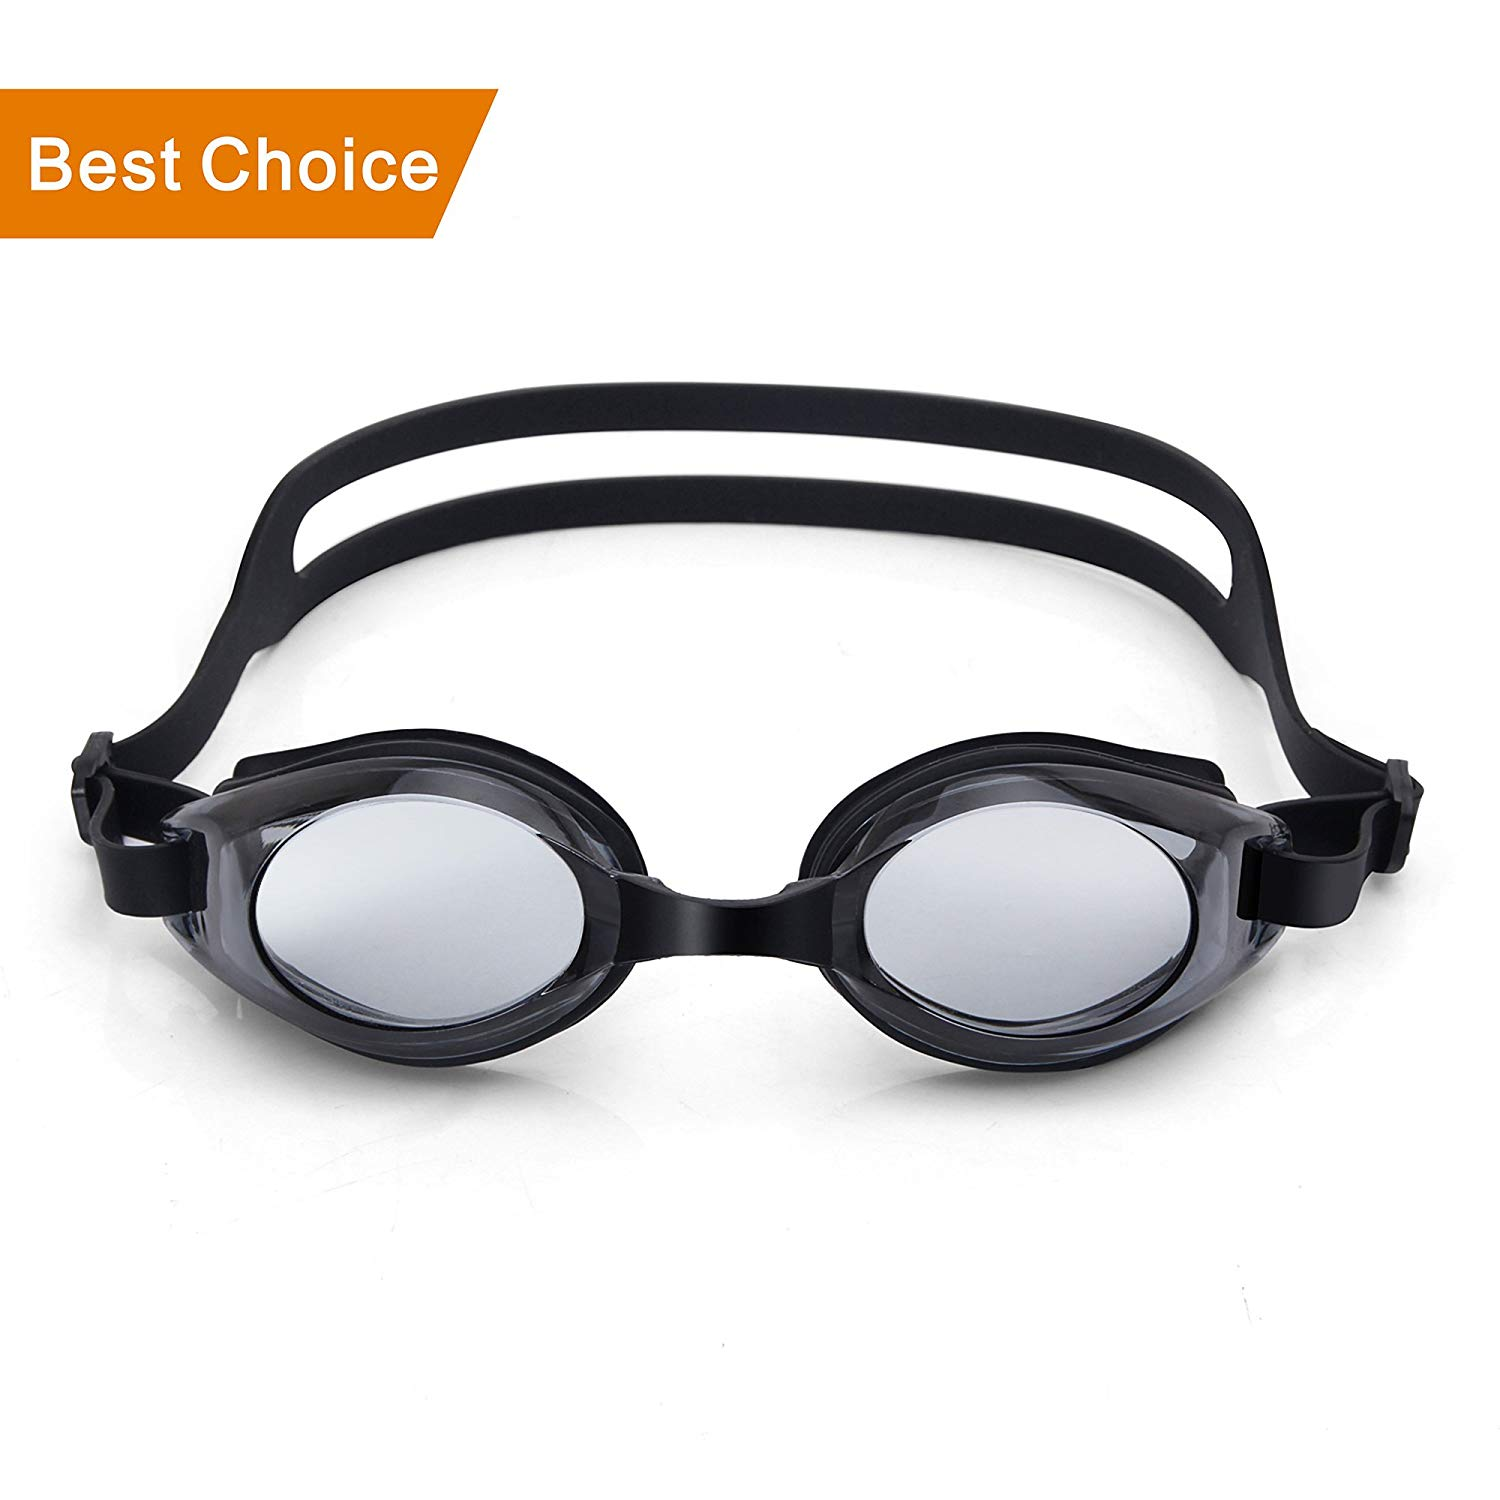 f9a4e1f22fa7 Get Quotations · Lenakrui Swim Goggles Youth Competition Swimming Goggles  for Men Women kids Boys Girls Toddlers Anti-